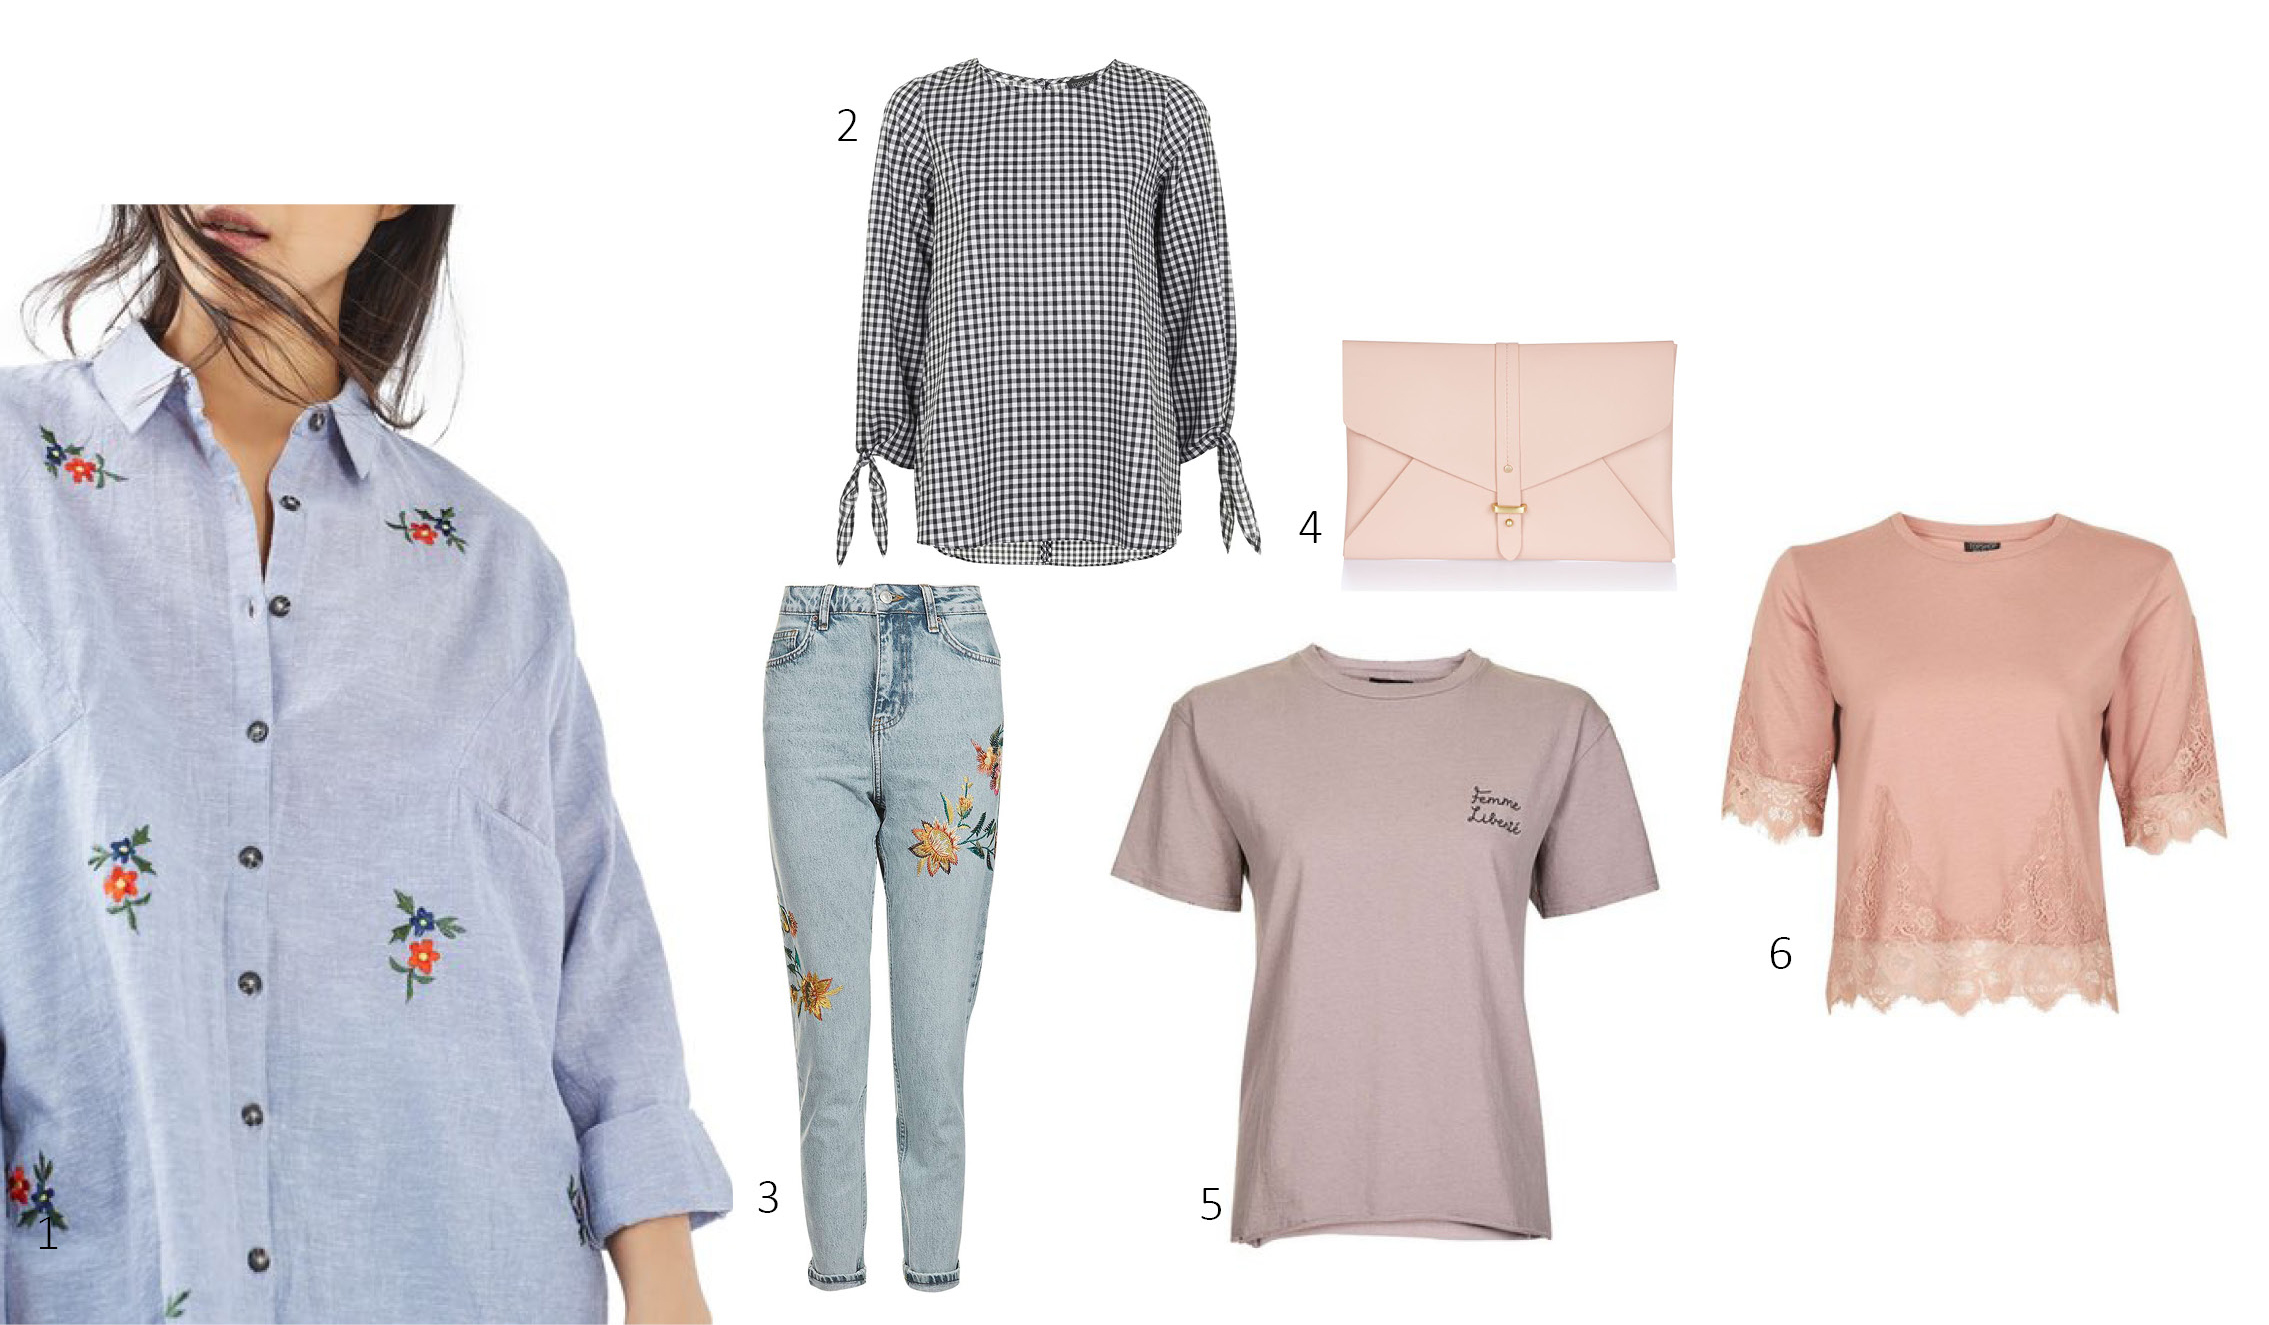 1.  Topshop Embroidered Shirt $60 ; 2.  Gingham Tie Sleeve Top $60  3.  MOTO Floral Embroidered Jeans $115 ; 4.  Colin Envelope Clutch $28 ;5.  Topshop Femme Liberte tee $28 6.  Lace Petal Tee Shirt $40